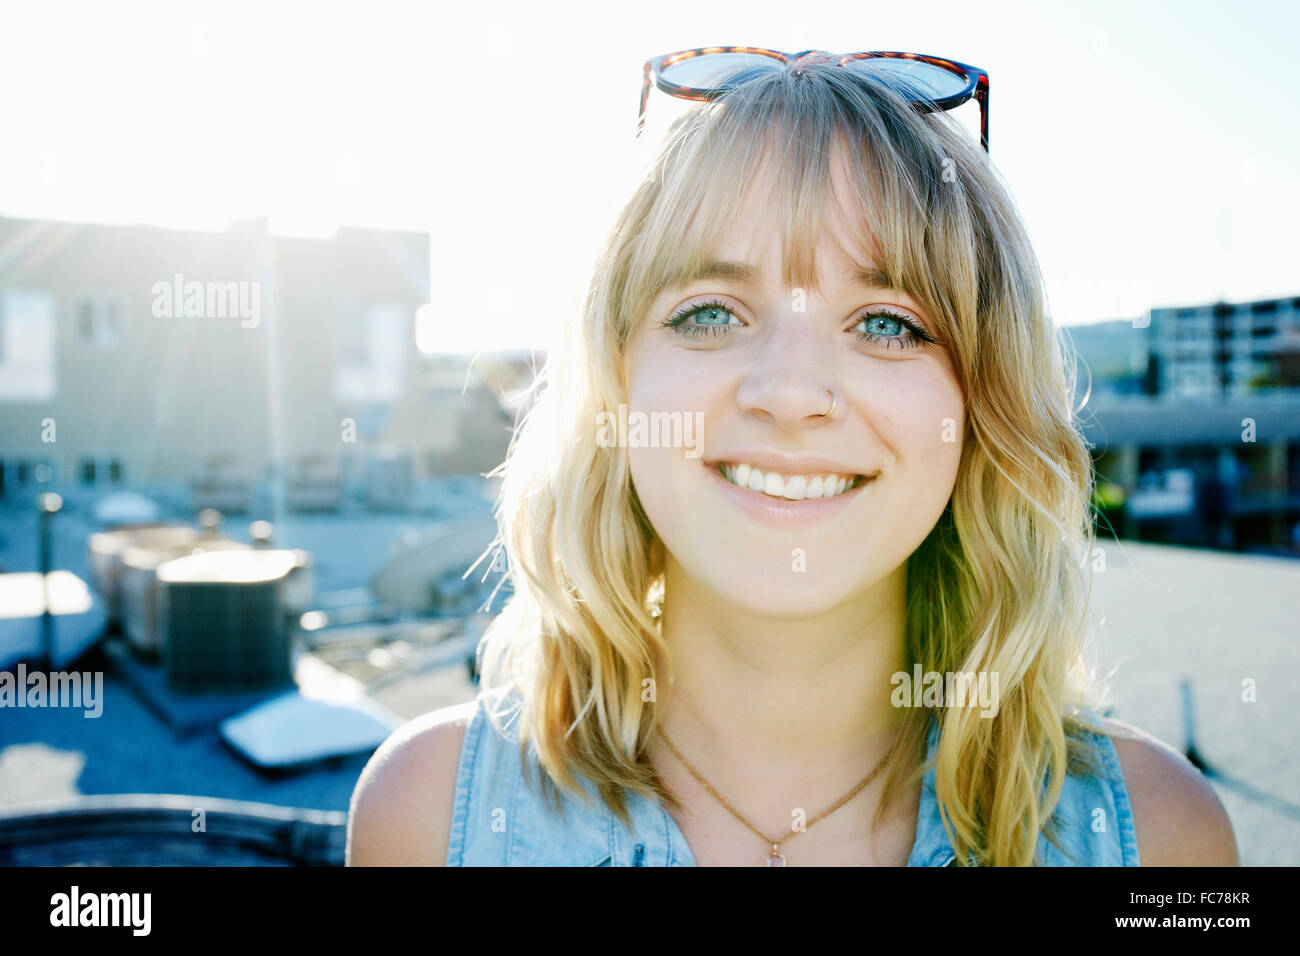 Caucasian woman smiling on urban rooftop Stock Photo